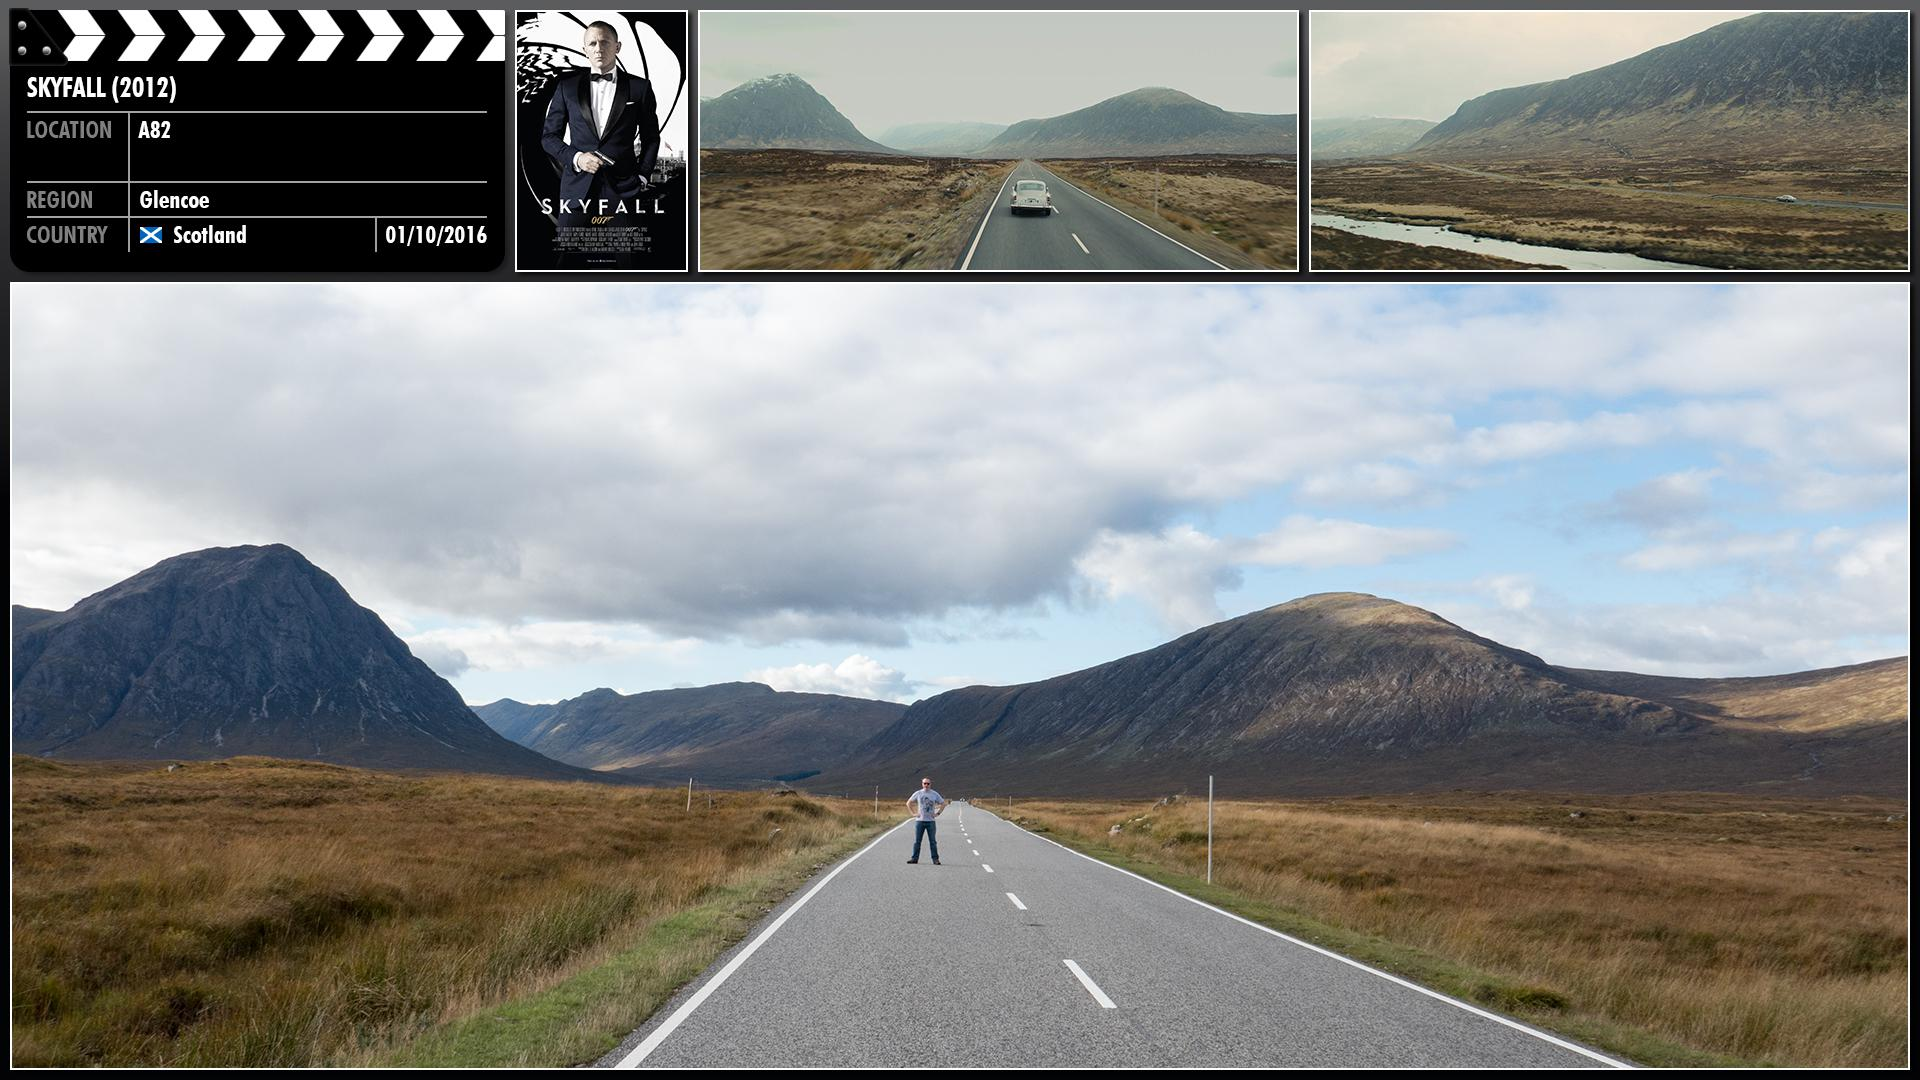 Filming location photo for Skyfall (2012) 3 of 3